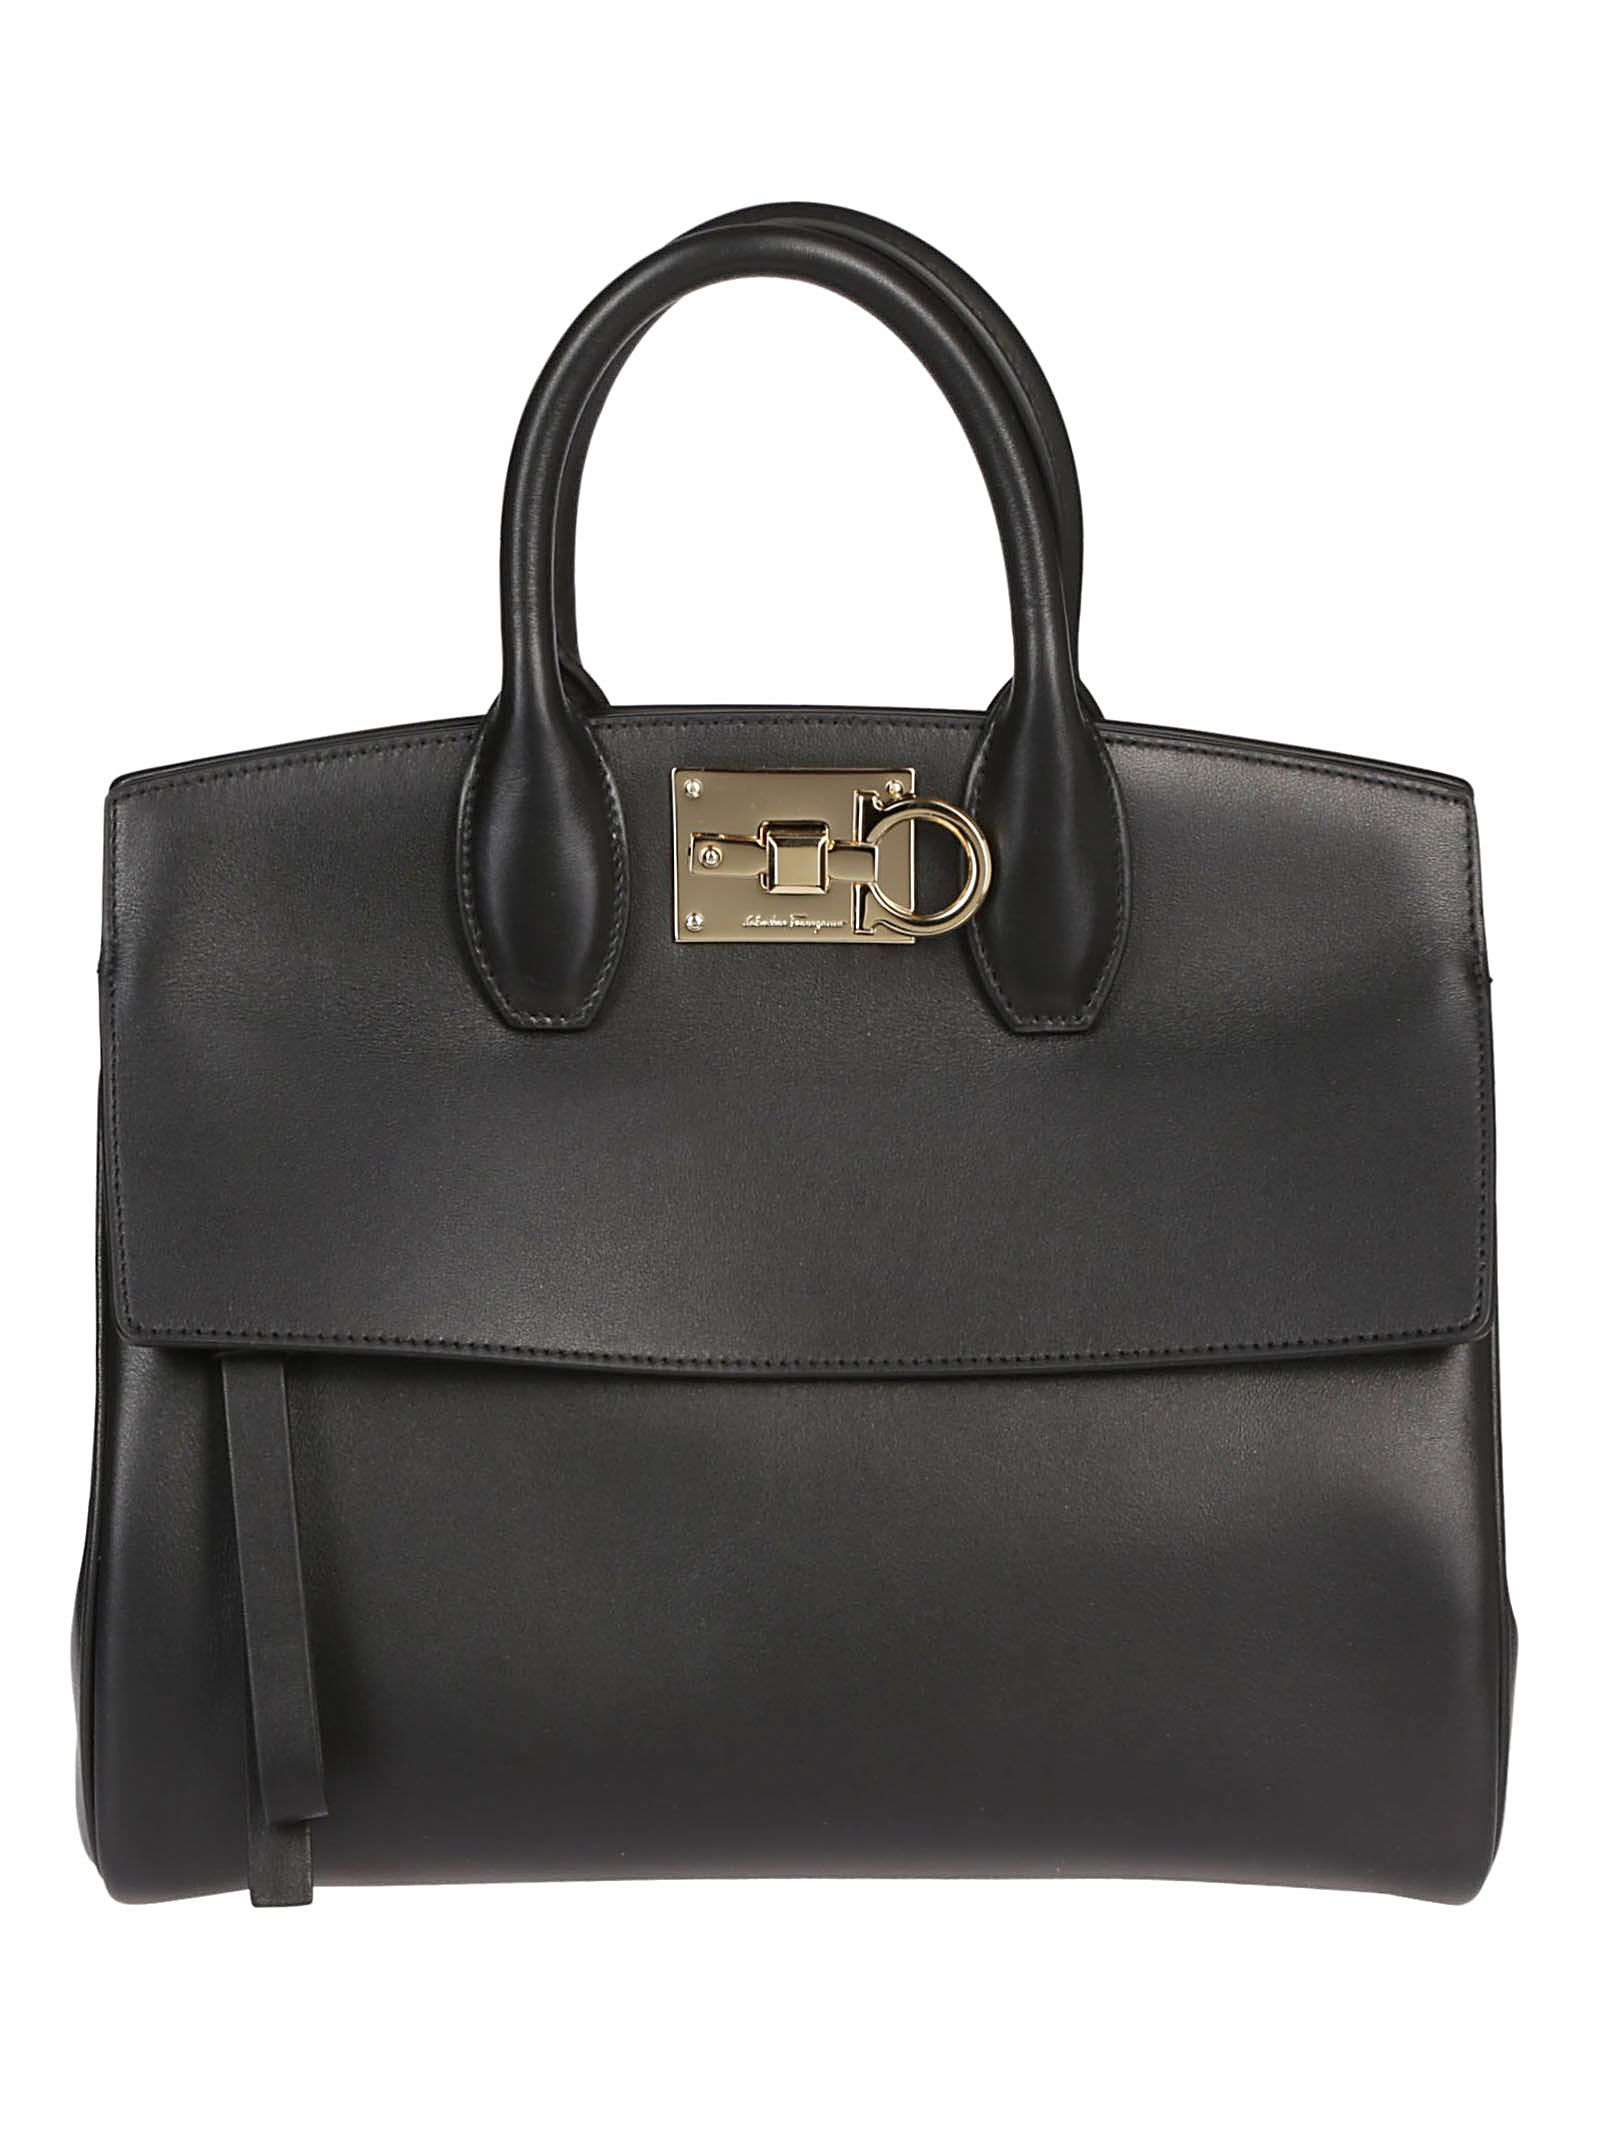 Salvatore Ferragamo Key Detail Tote